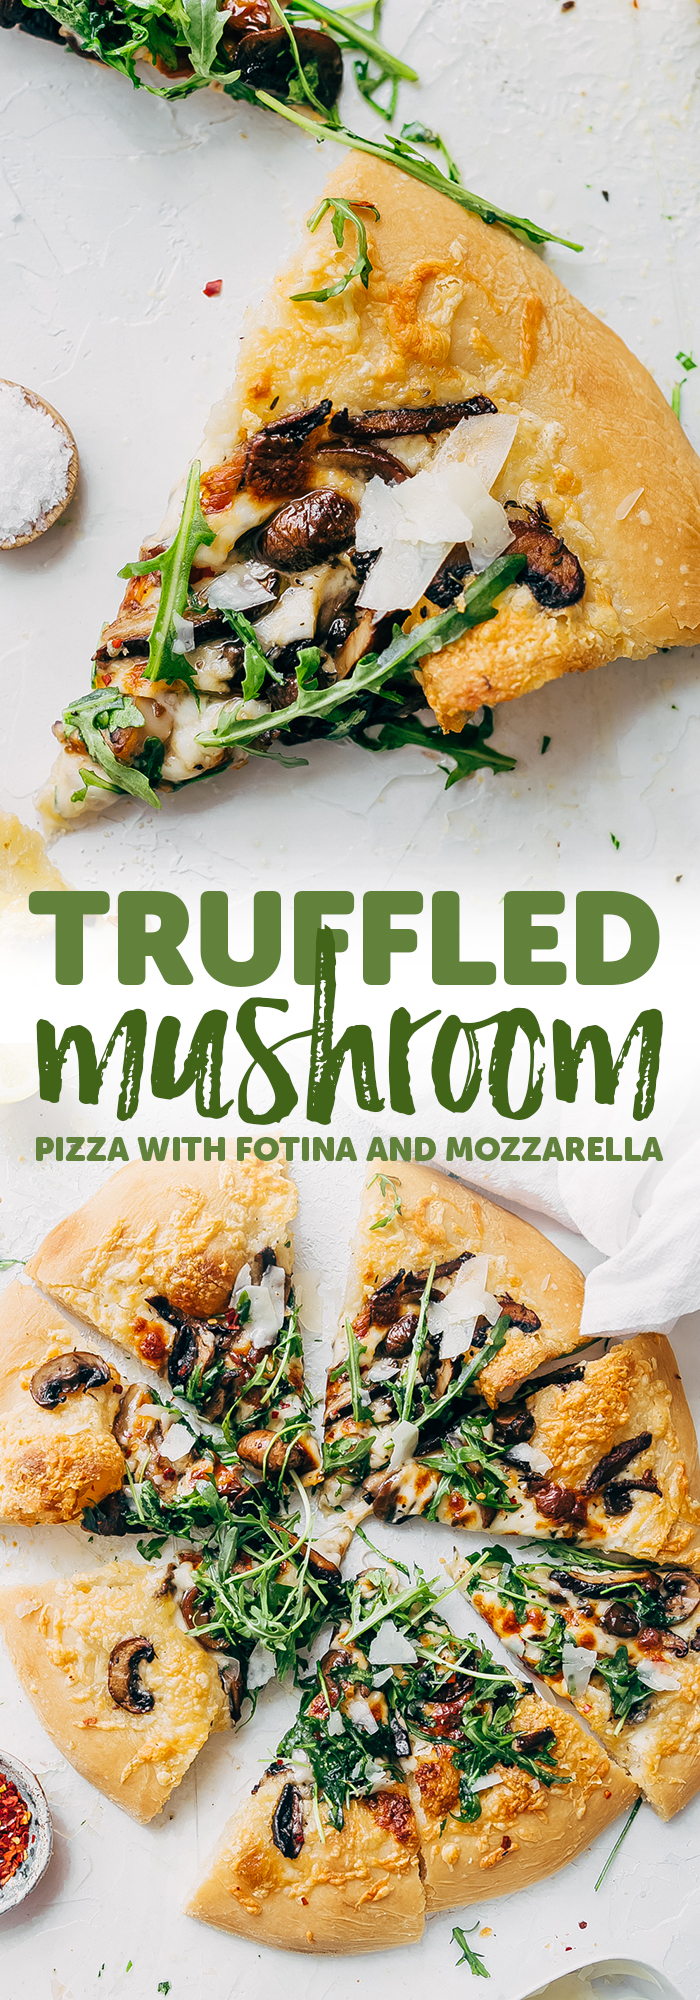 Truffled Mushroom Pizza - learn how to make a quick and easy truffled mushroom pizza! Topped with two kinds of cheese and it tastes like you ordered in from a fancy pizza shop! #pizzarecipe #mushroompizza #truffledmushroompizza #pizza | Littlespicejar.com